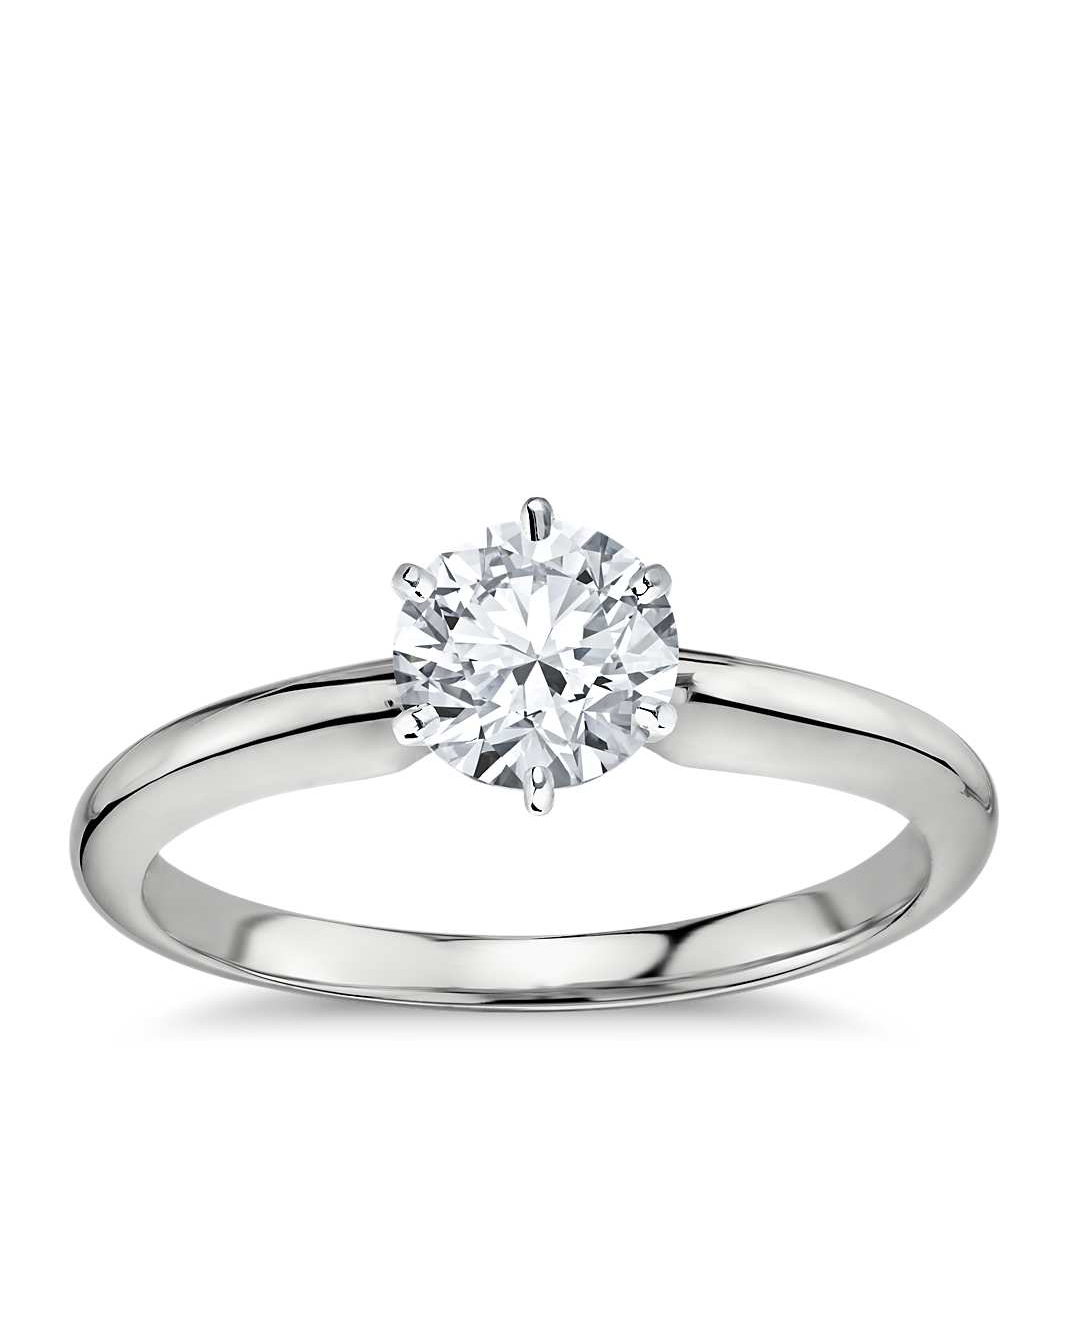 Blue Nile Classic Six-Prong Solitaire Engagement Ring